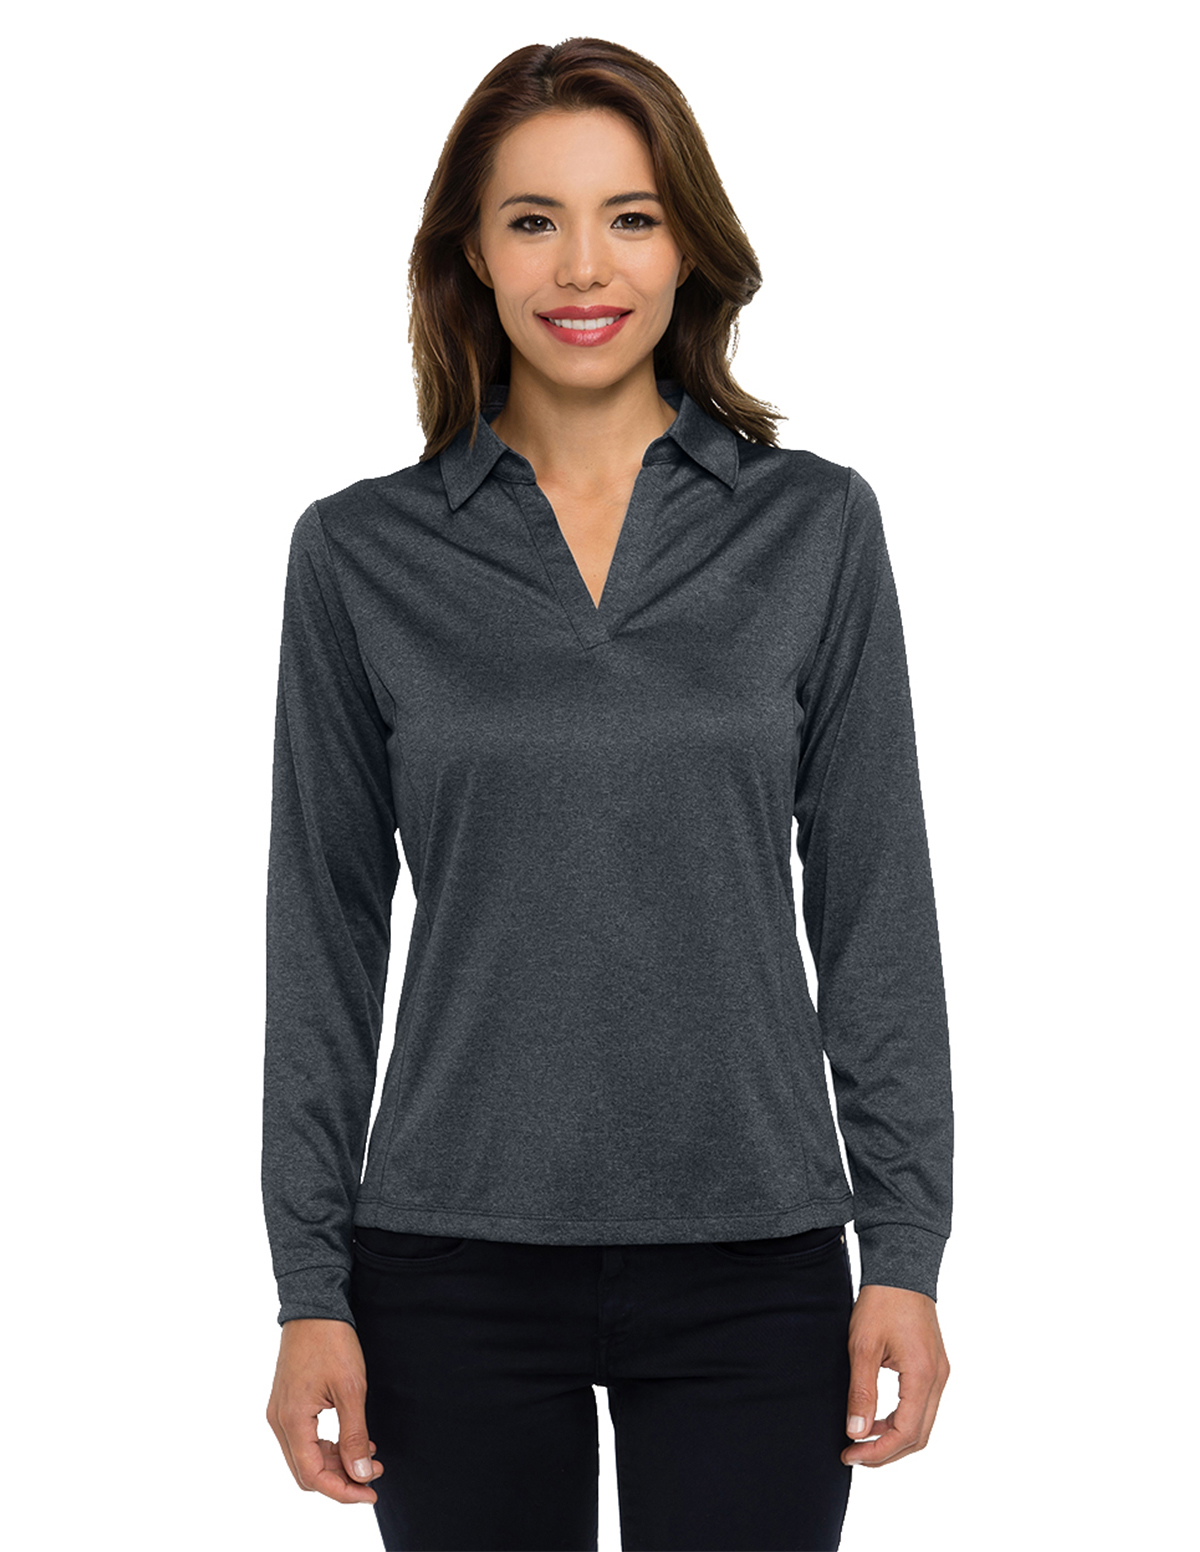 Tri-Mountain Gold KL209LS - Women's long sleeve ...